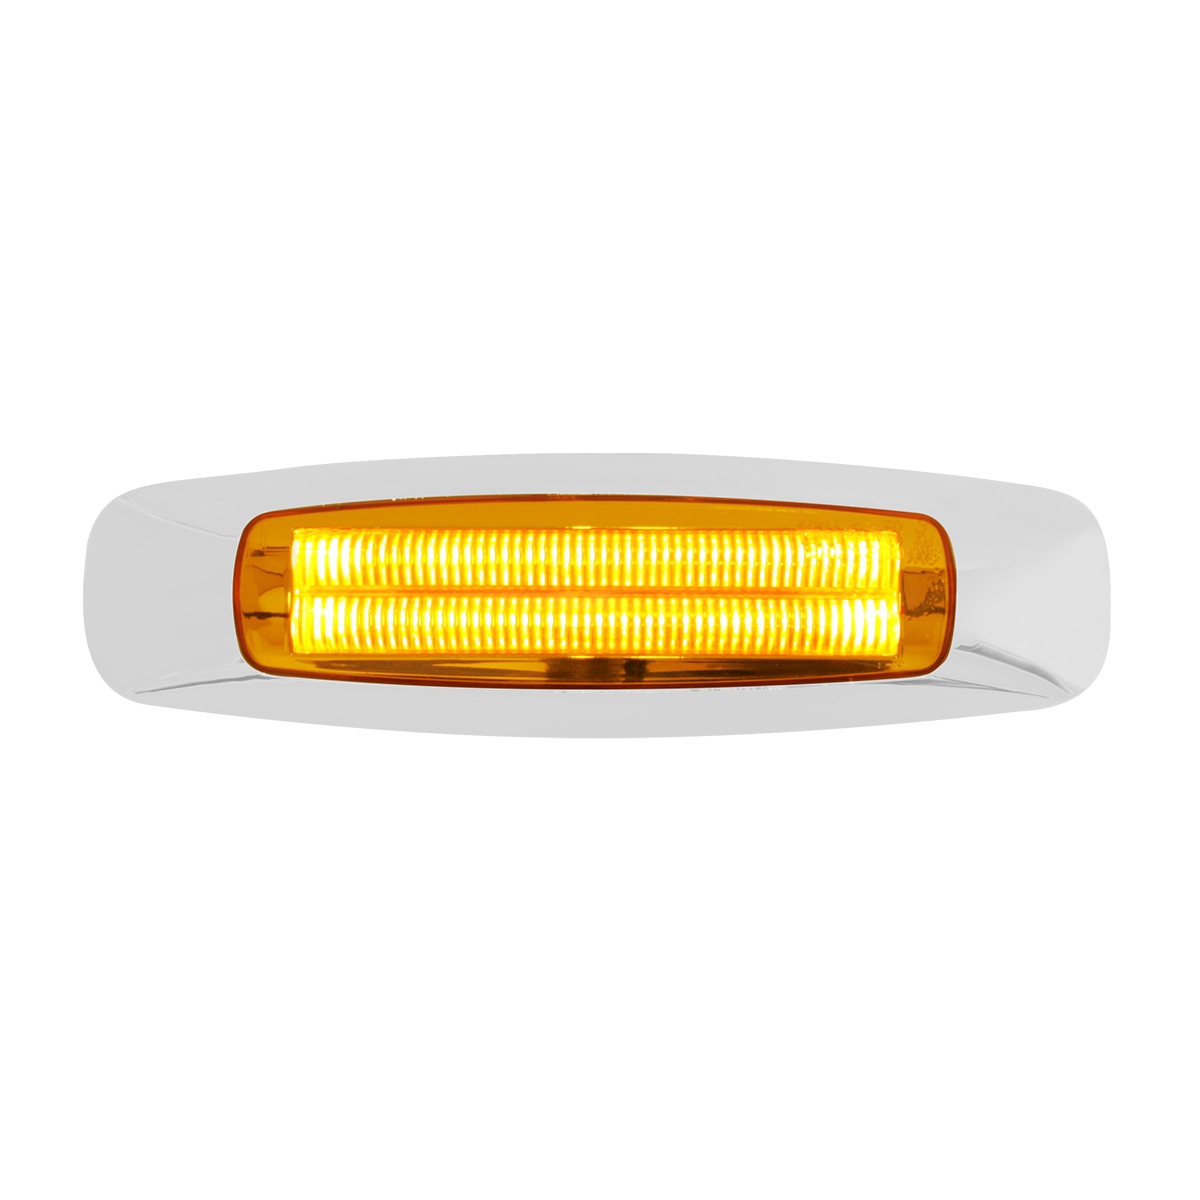 "74740 5-3/4"" Dual Function Rectangular Prime LED Light"